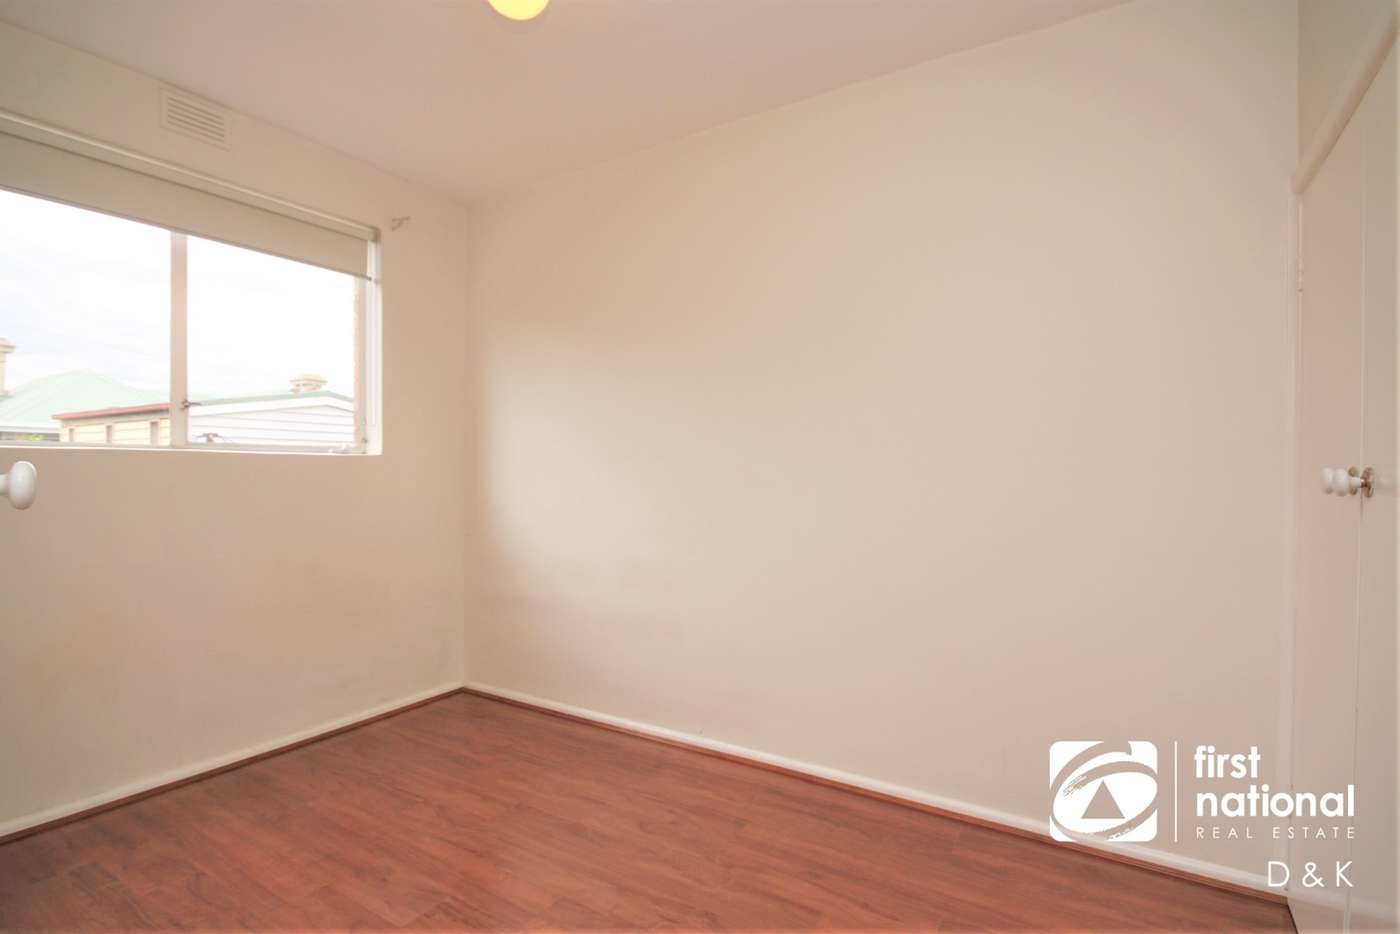 Sixth view of Homely apartment listing, 6/181 Geelong Road, Seddon VIC 3011